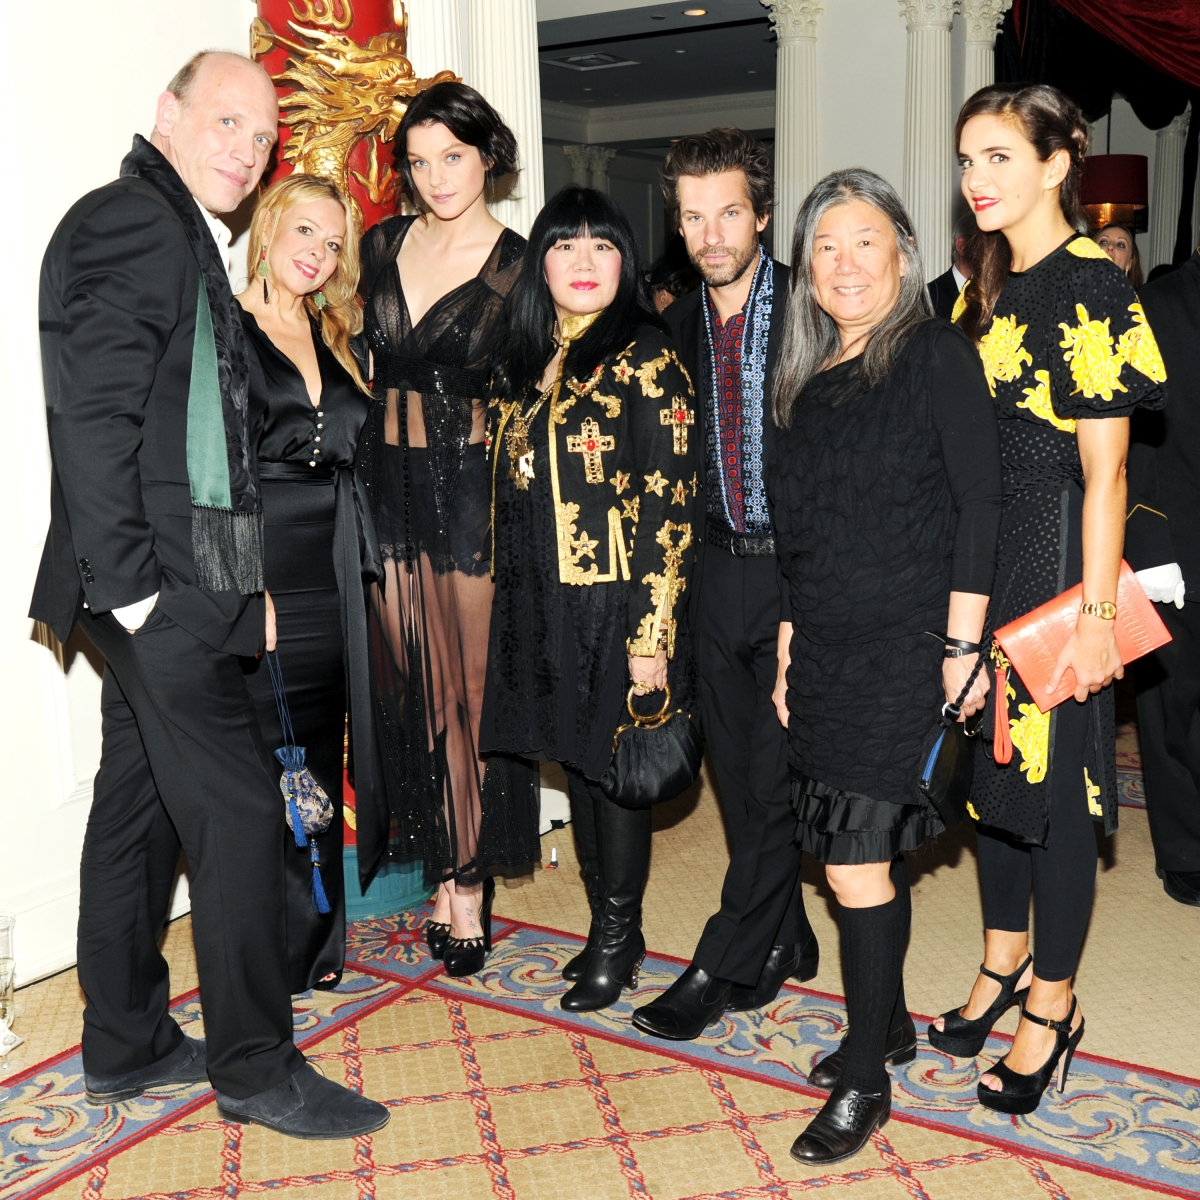 L to R: Dirk Standen, Susan Standen, Jessica Stam, Anna Sui, Aaron Young, Yeohlee Teng and Laure Heriard Dubreuil. (Billy Farrell)